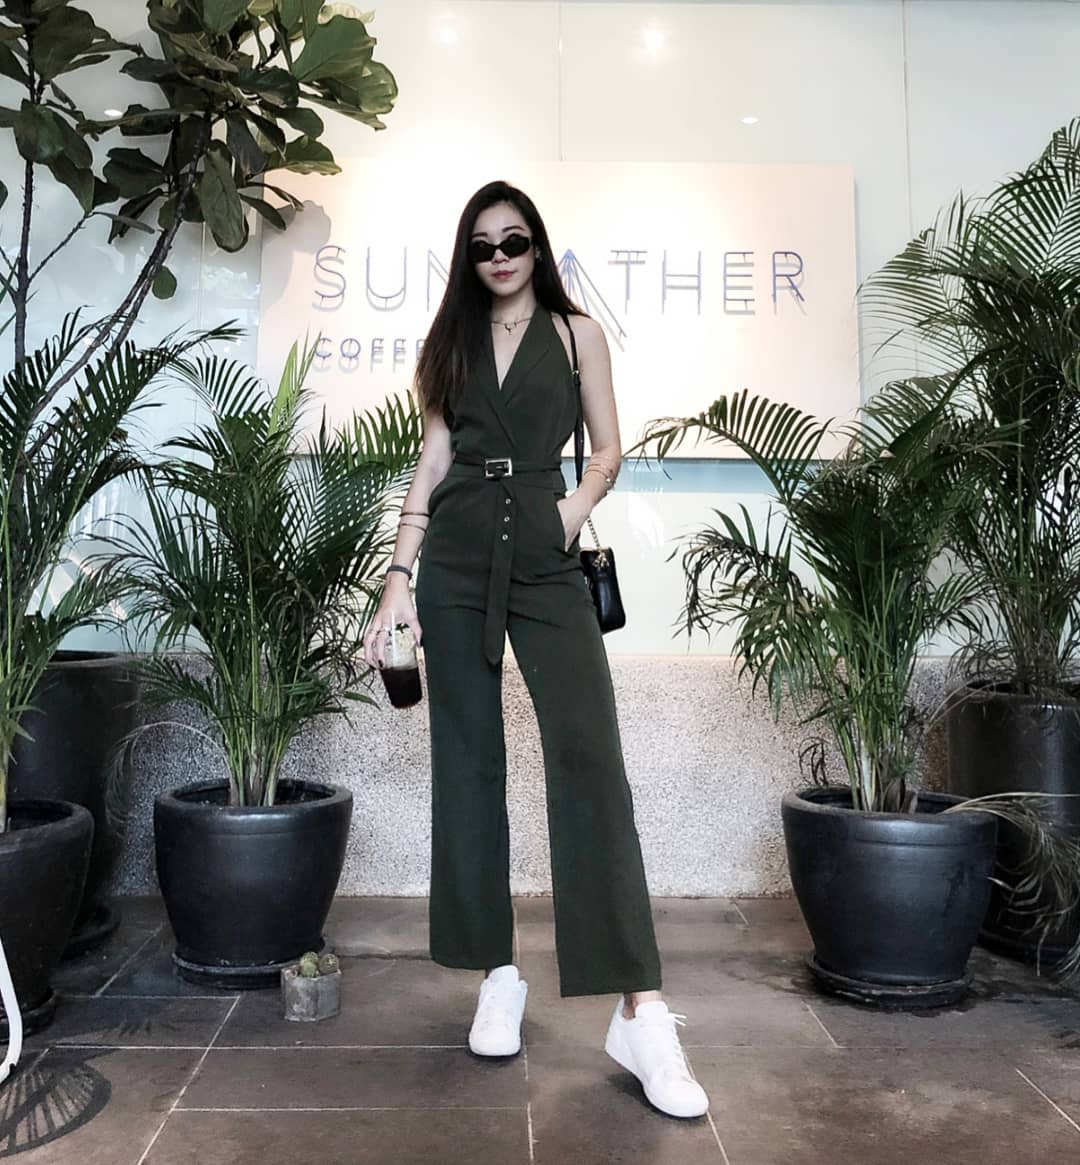 Jumpsuit as seen on  @amandalmy .